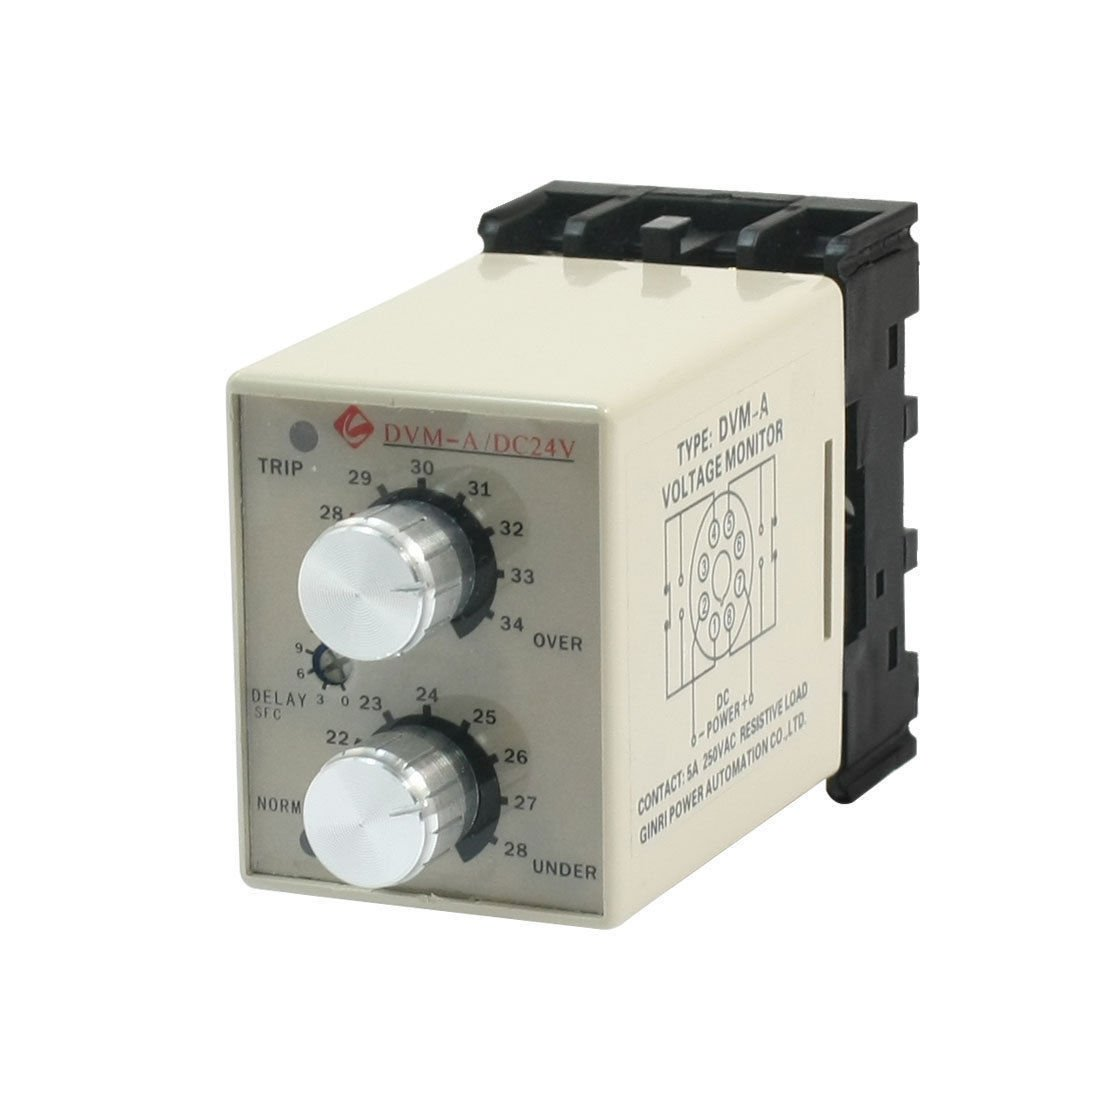 DVM-A DC 24V Protective Adjustable Over/Under Voltage Monitoring Relay